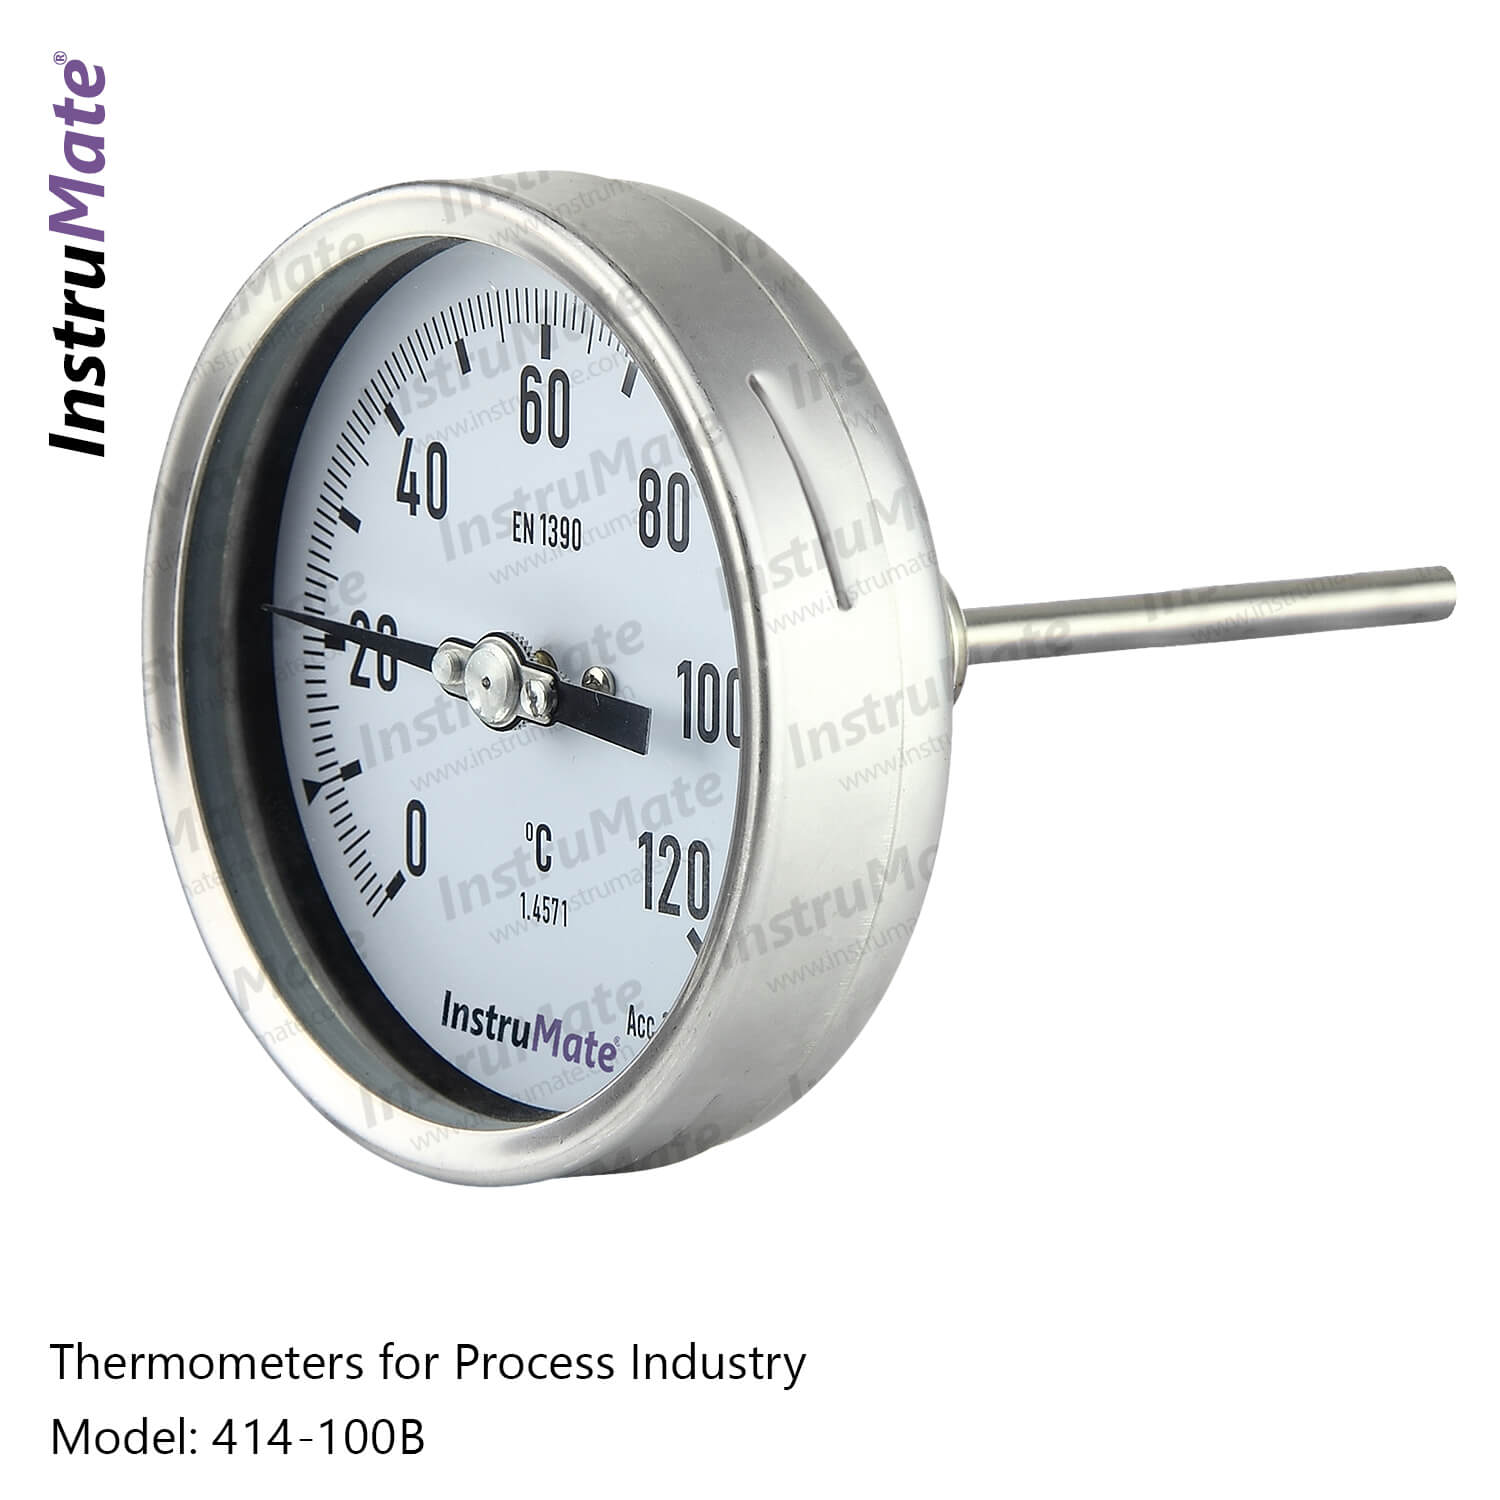 Process thermometer - 414 - InstruMate